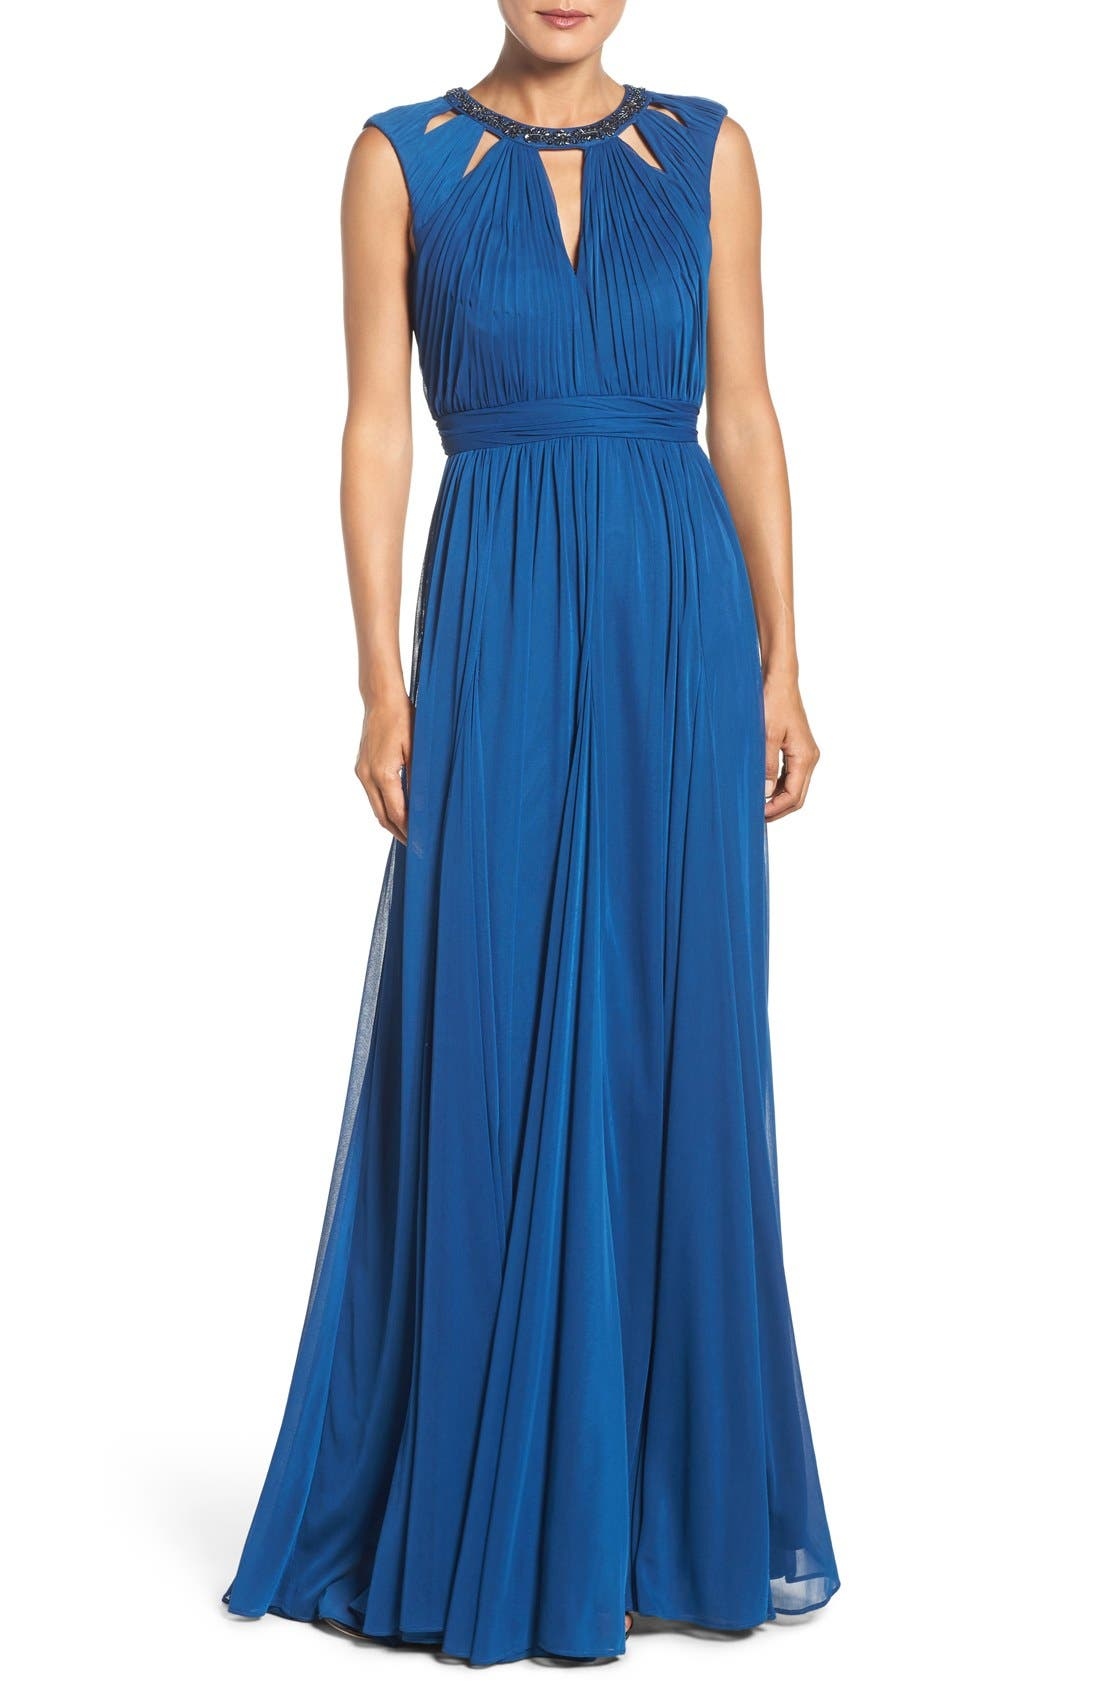 Main Image - Adrianna Papell Embellished Collar Shirred Gown